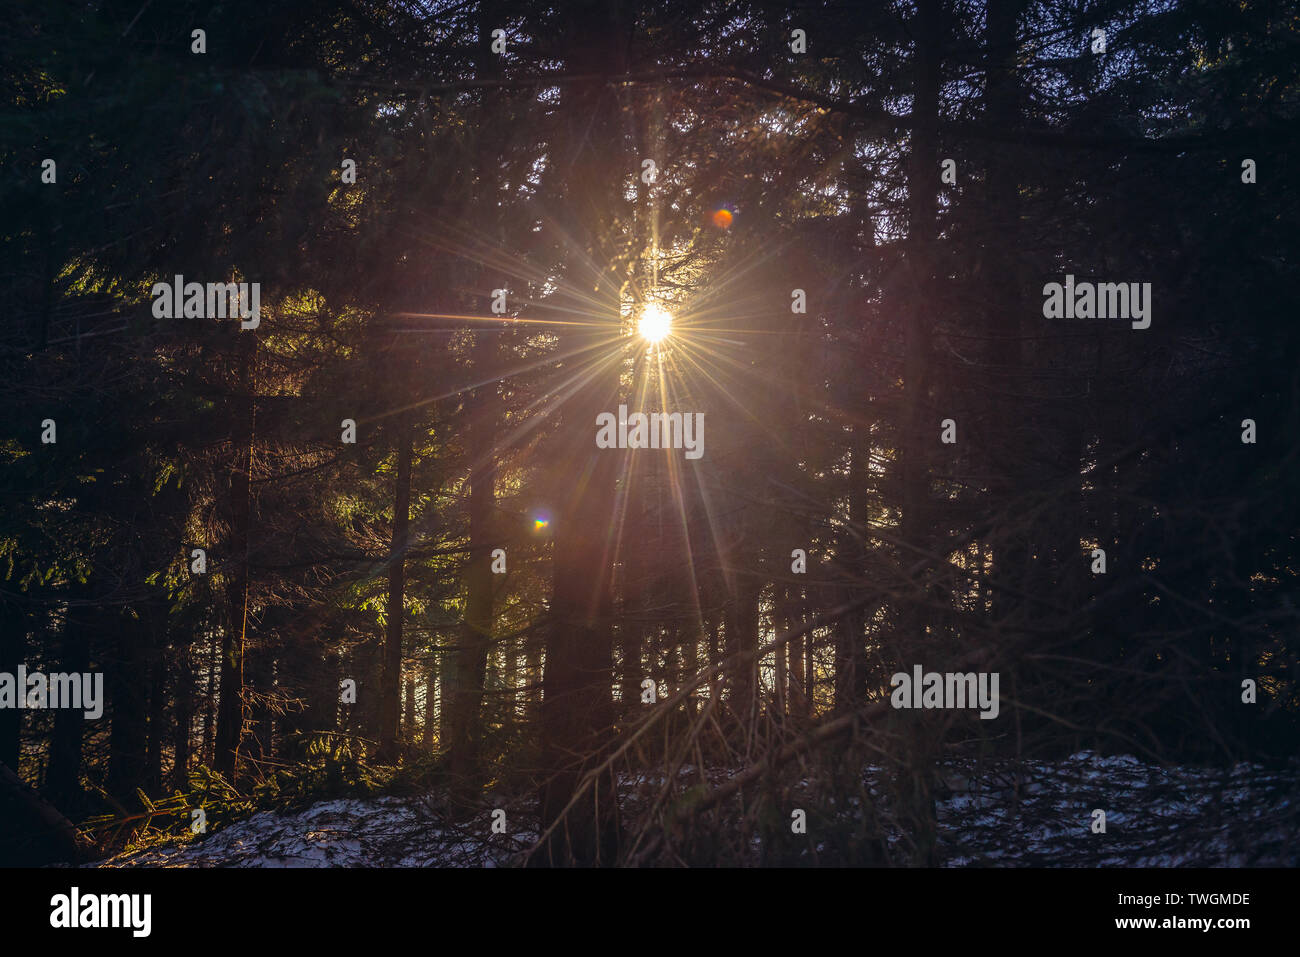 Forest on Wielka Sowa (Great Owl) mount in Landscape Park of Gory Sowie (Owl Mountains range) in Central Sudetes, Poland - Stock Image